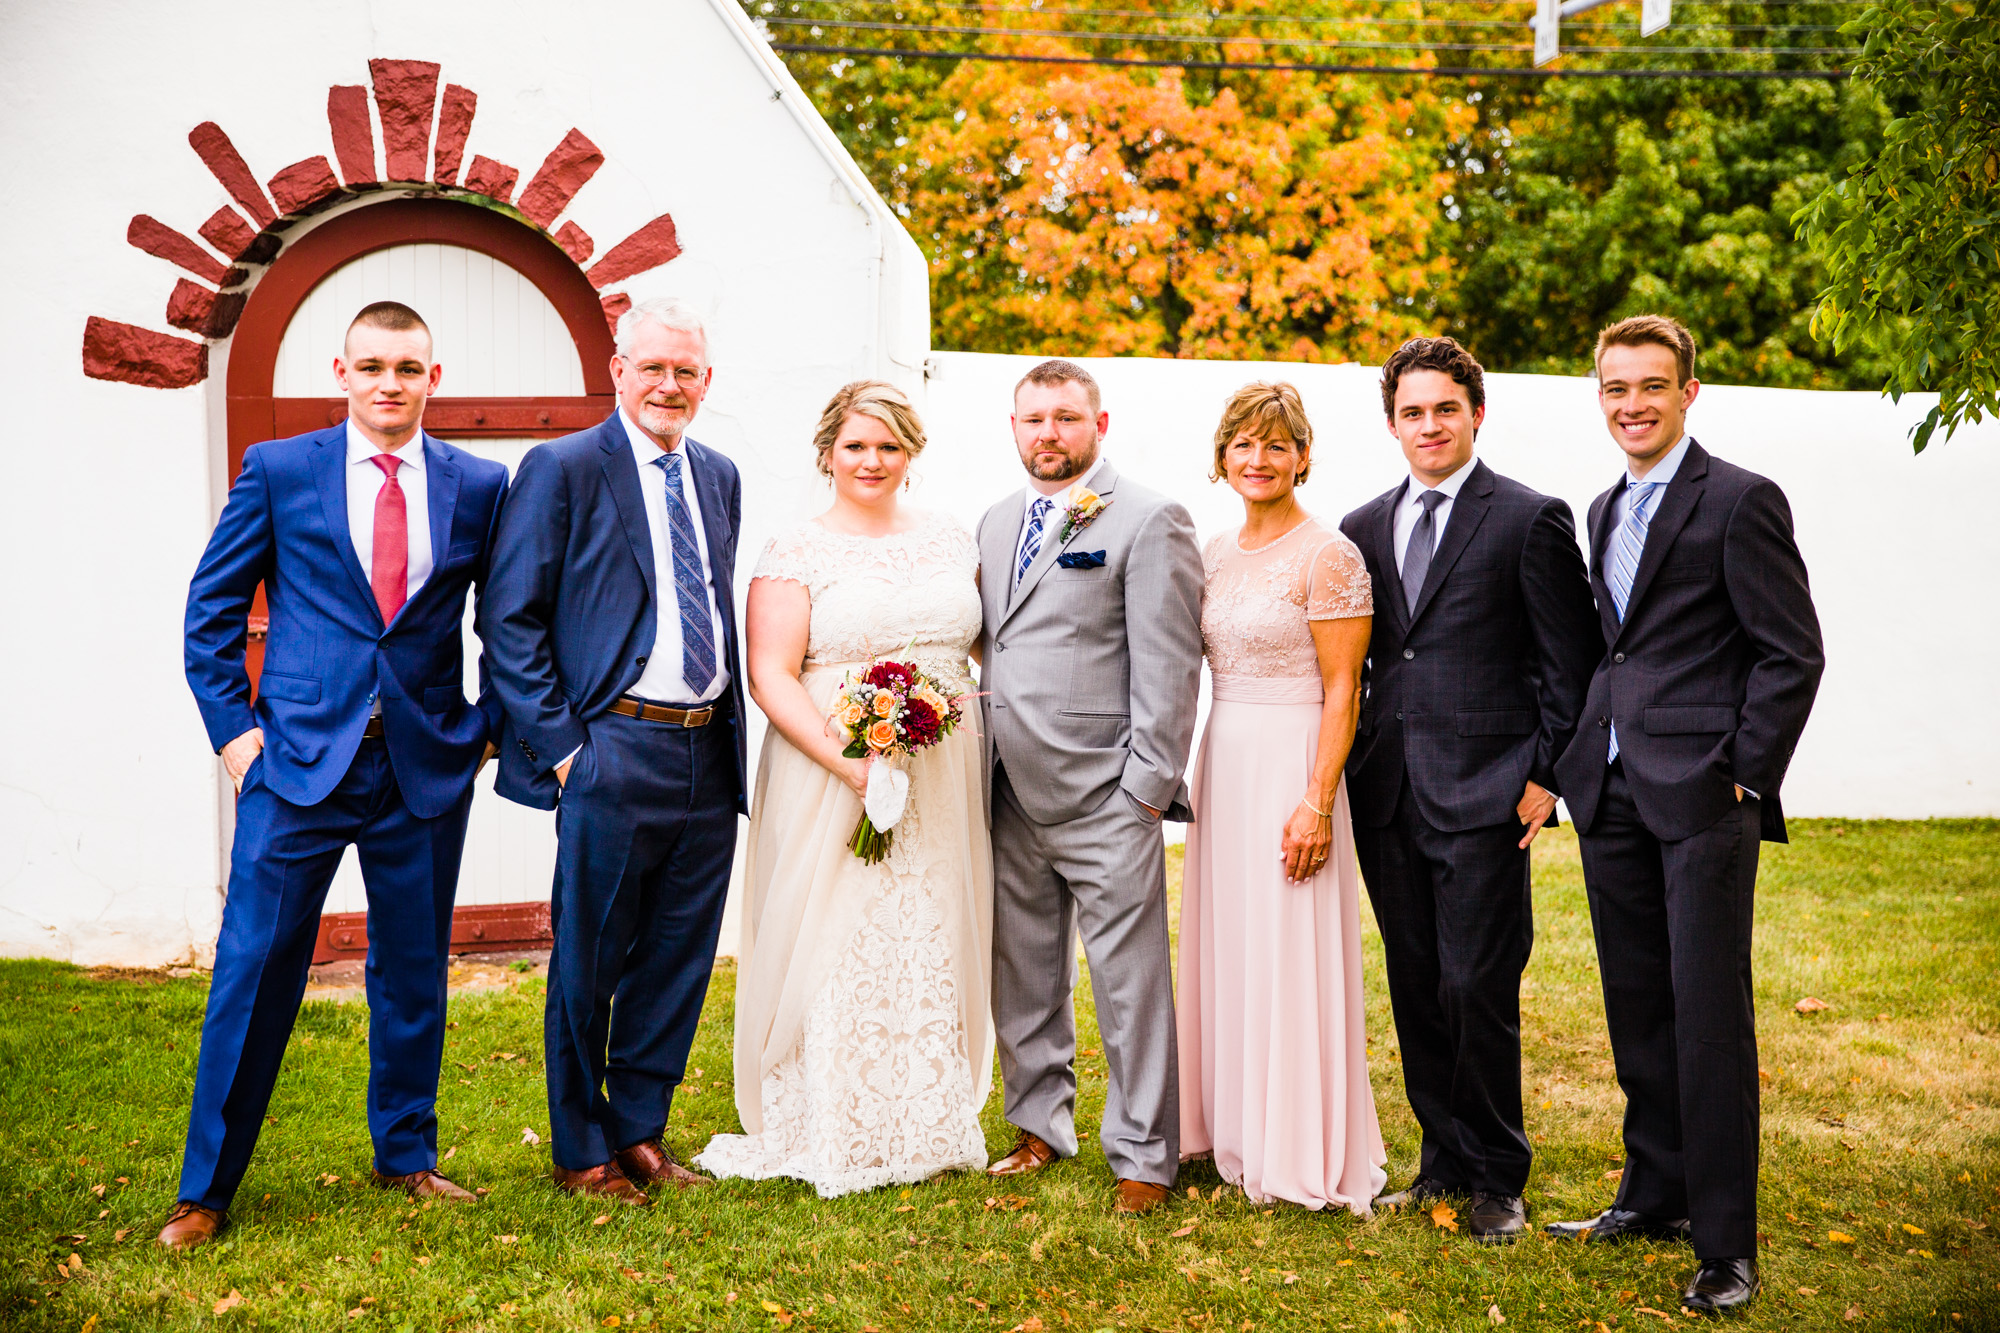 LOVESTRUCK PICTURES NORMANDY FARMS WEDDING - 046.jpg